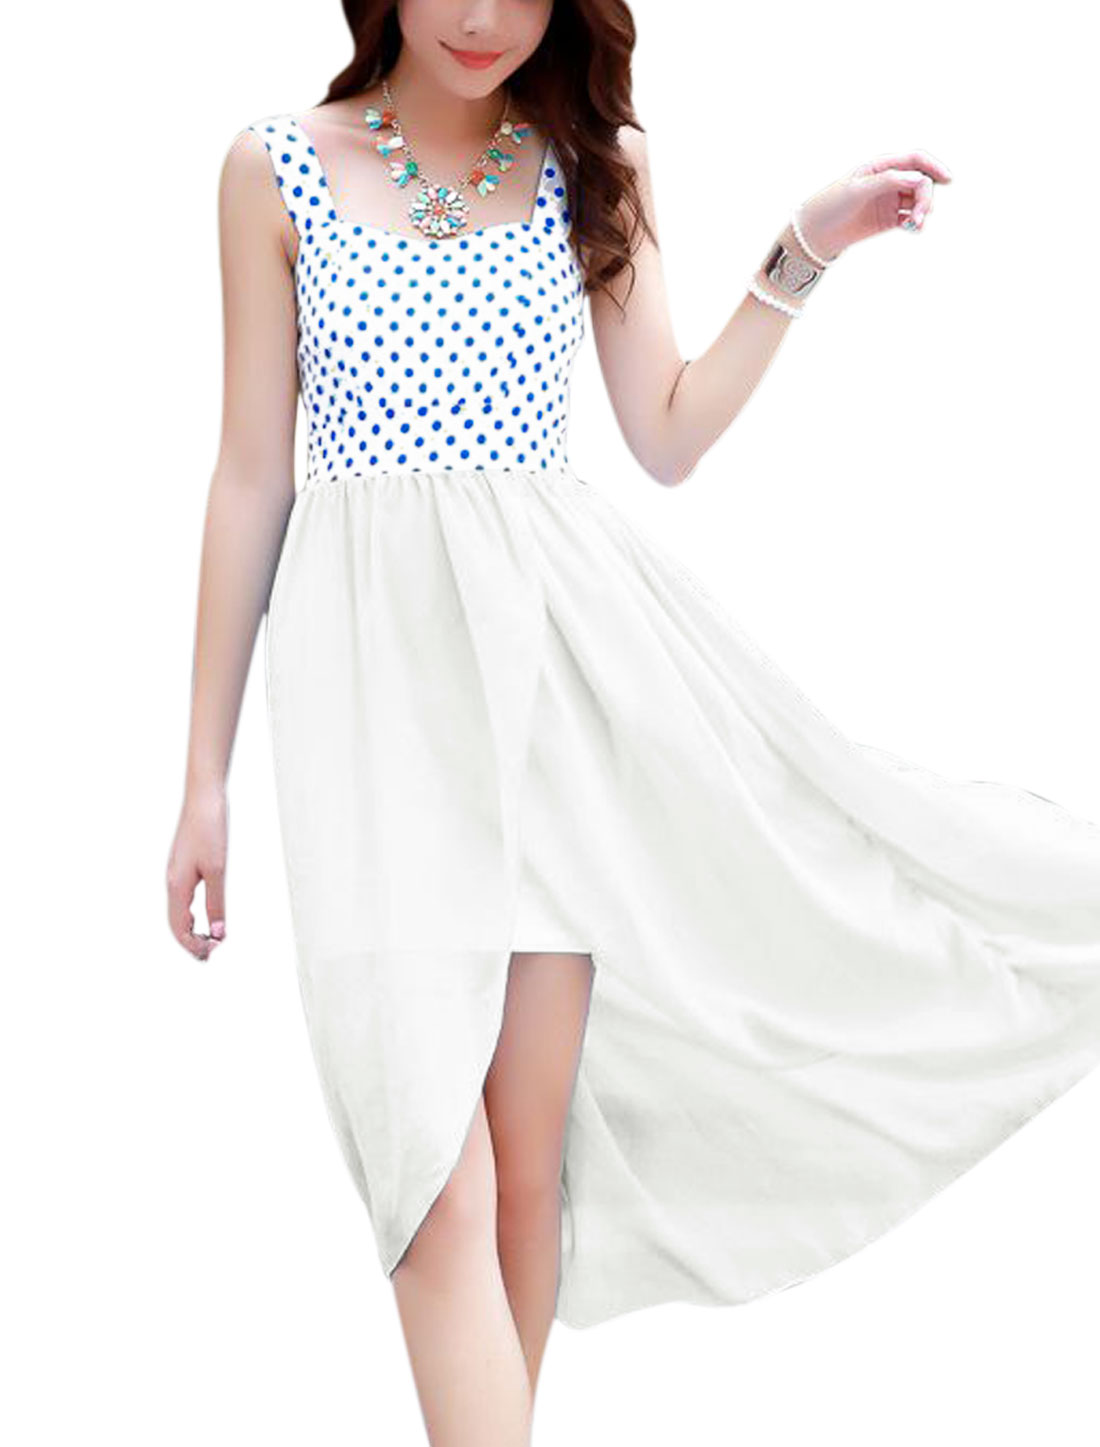 Lady Shoulder Straps Padded Bust Dots Prints Chiffon Panel Dress White XS